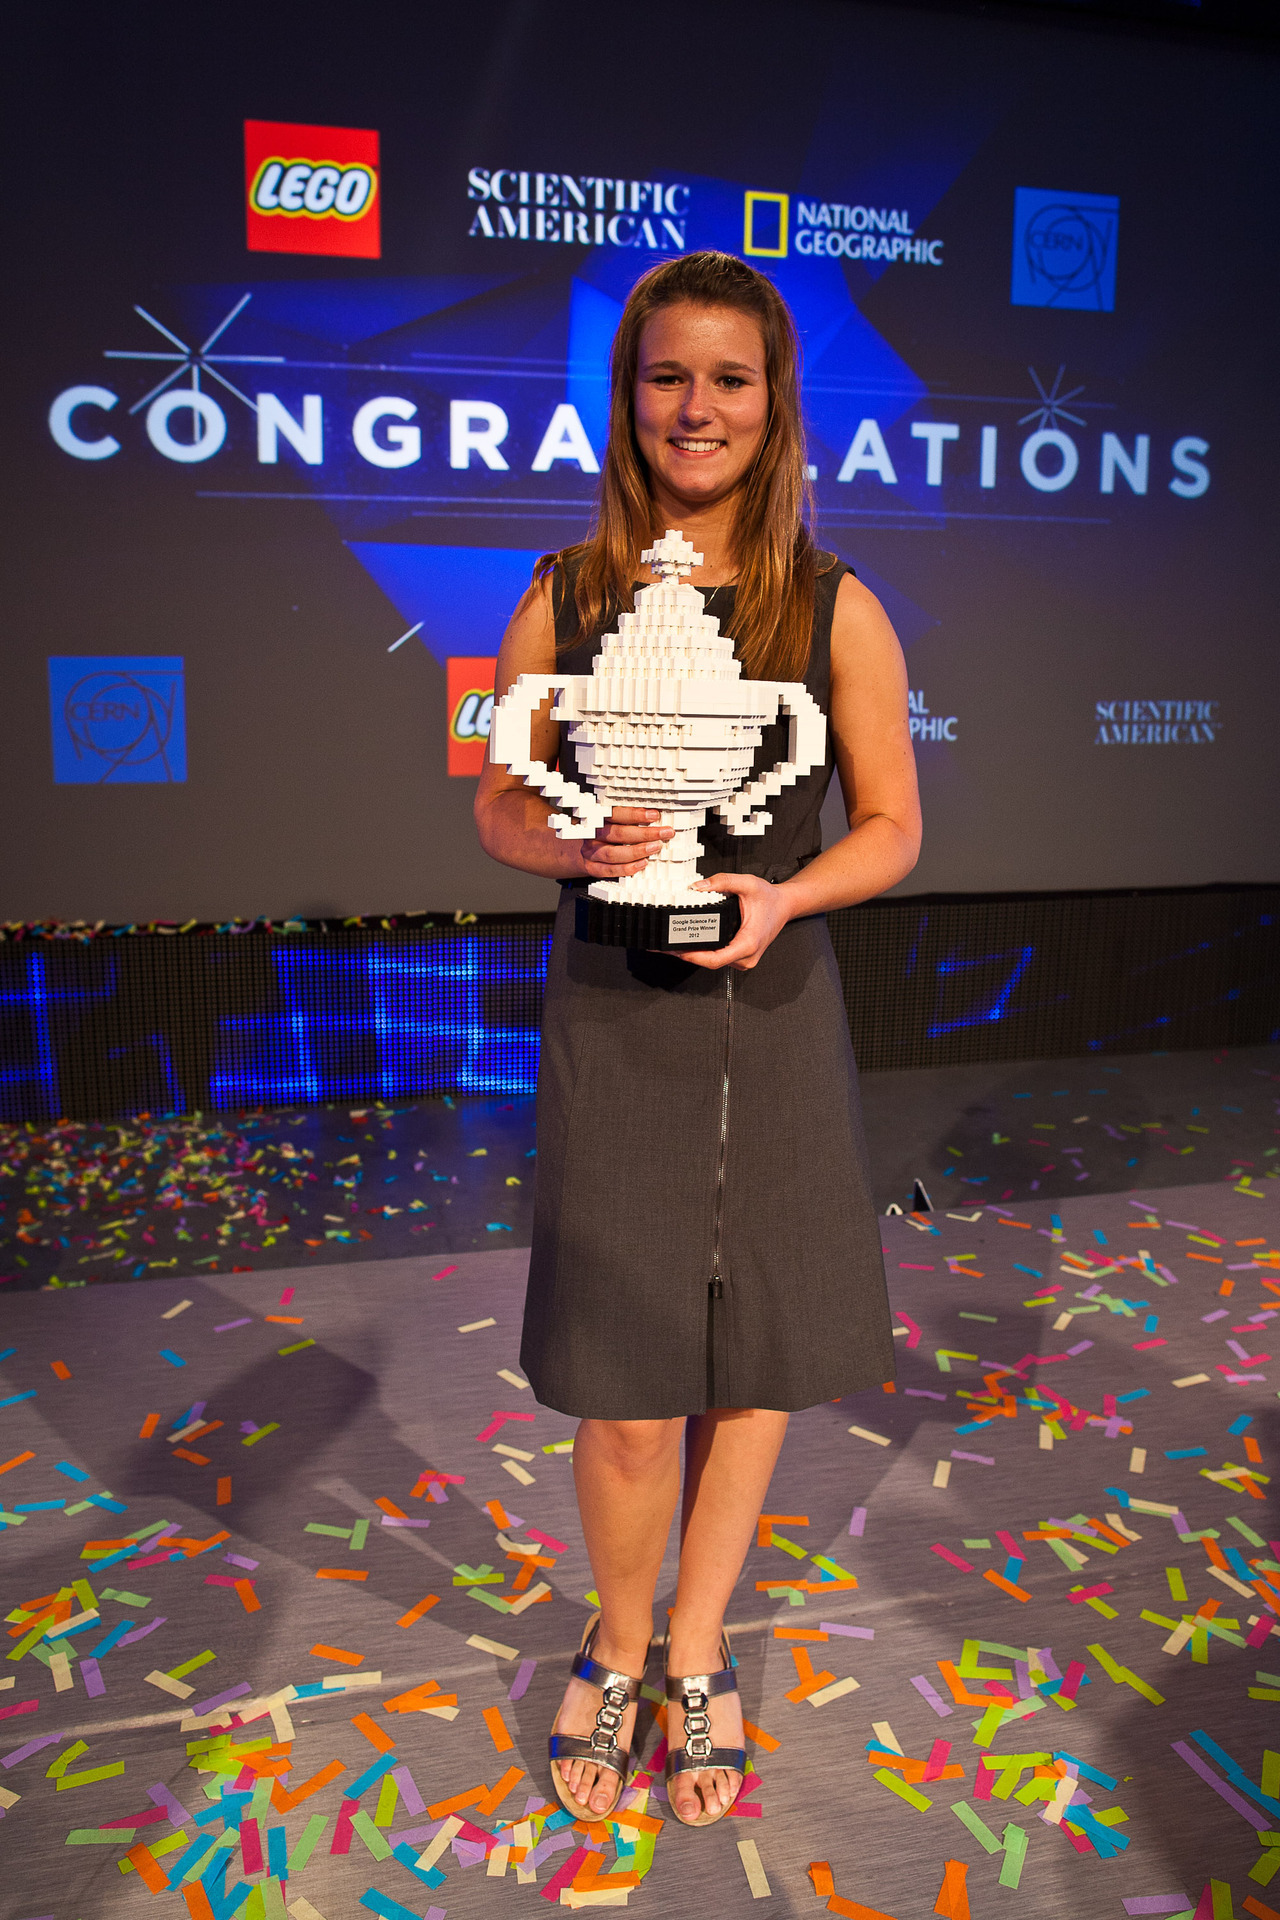 "Meet Brittany Wenger, Google Science Fair 2012 Winner and All-Around Awesome Person Florida teen develops artificial intelligence breast cancer detection tool If we lived in a just world, 17 year-old Brittany Wenger would have endorsement contracts, too many cars and an assistant. You know, if she wanted them. Because this is what a role model looks like. She's this year's winner of the Google Science Fair, and must add that I'm jealous of that Lego trophy. Far from being an exception, Brittany exemplifies the quality of her fellow finalists. Looking through this year's list of top projects, I can't help but notice how stunningly intelligent and confident all the competitors are. Brittany developed an artificial neural network (a ""software brain"" of sorts) to help doctors take what used to be a safer but less reliable form of biopsy and turn it into a highly successful tool for detecting breast cancer. You can experience her program here. Seem out of reach? Brittany explains where she got her inspiration:  In school we were researching the future, and my part of the future that I was researching was future technologies. I grew fascinated by artificial intelligence, which I came across. I went home that night, and I bought a computer programming book and, with no experience, decided that was what I was going to do with the rest of my life.   Congrats to her and all this year's finalists. And congrats to everyone who was inspired to do projects this year and will be inspired in years to come. I'm with Neil, I'm not worried about young people. This proves why. (↬ Budding Scientist)"